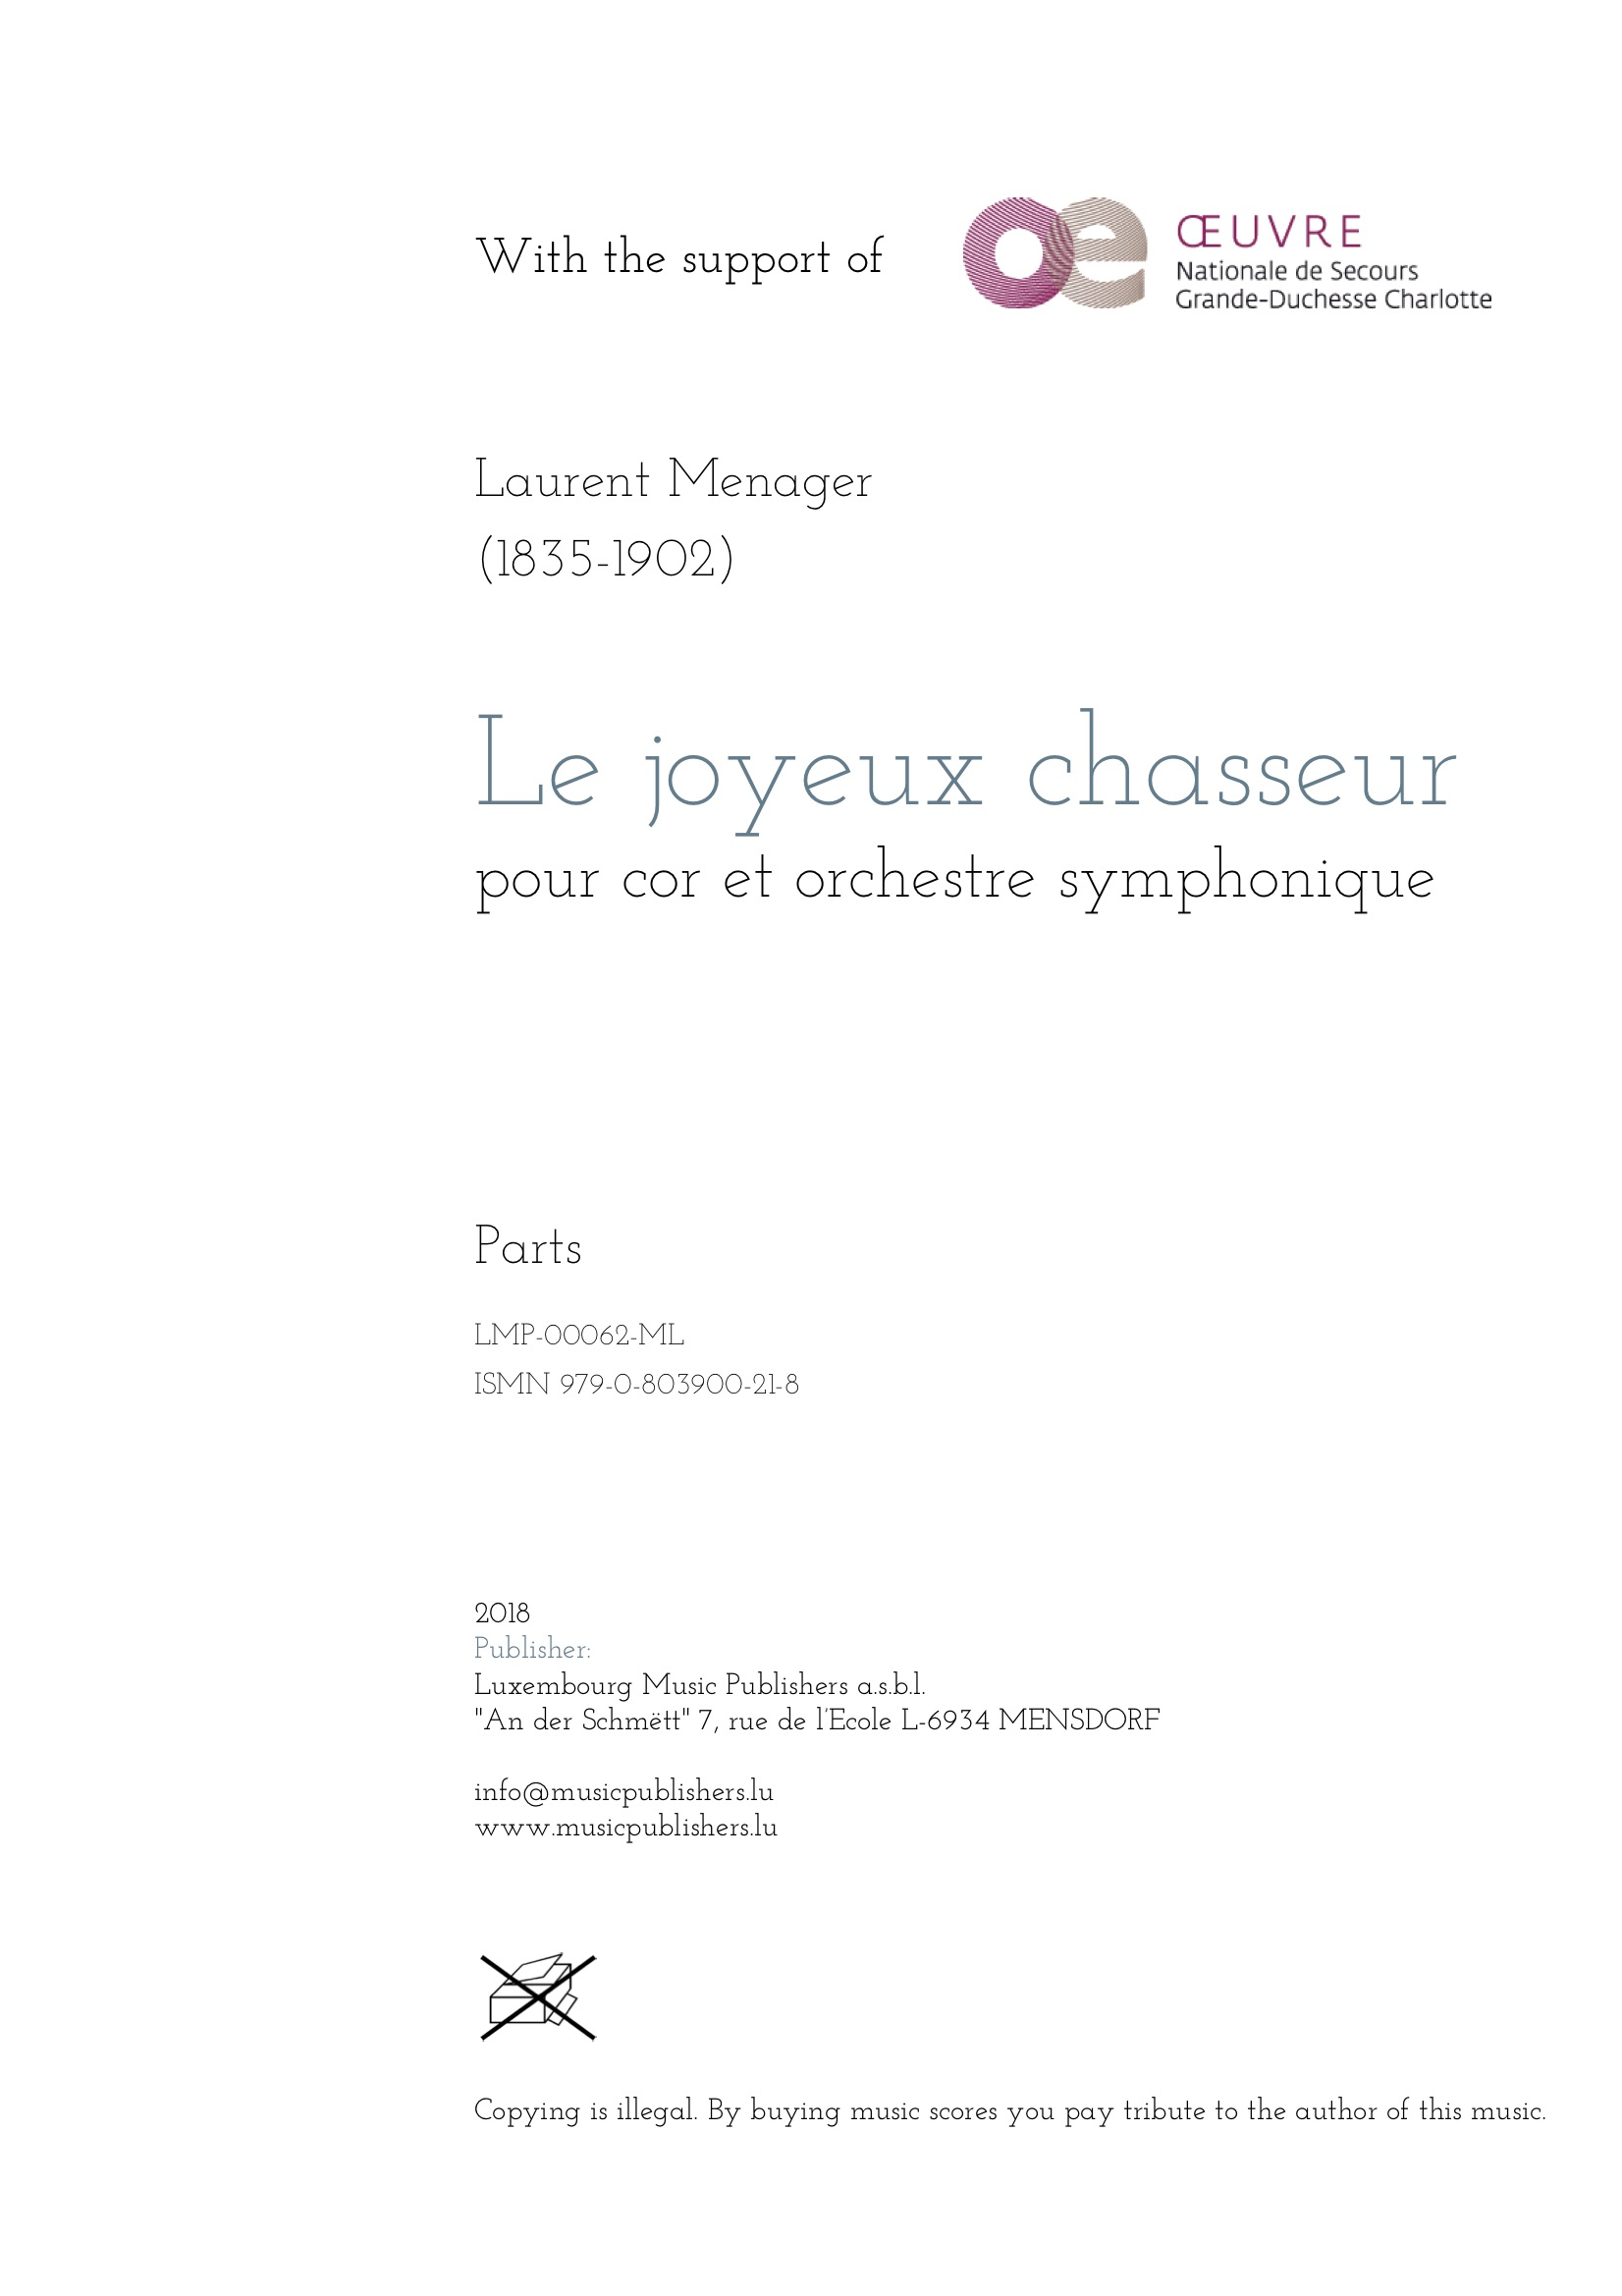 Le joyeux chasseur. Sheet Music by Laurent Menager, composer. Music for horn solo and symphonic orchestra. Music for solo instrument and orchestra. Parts.